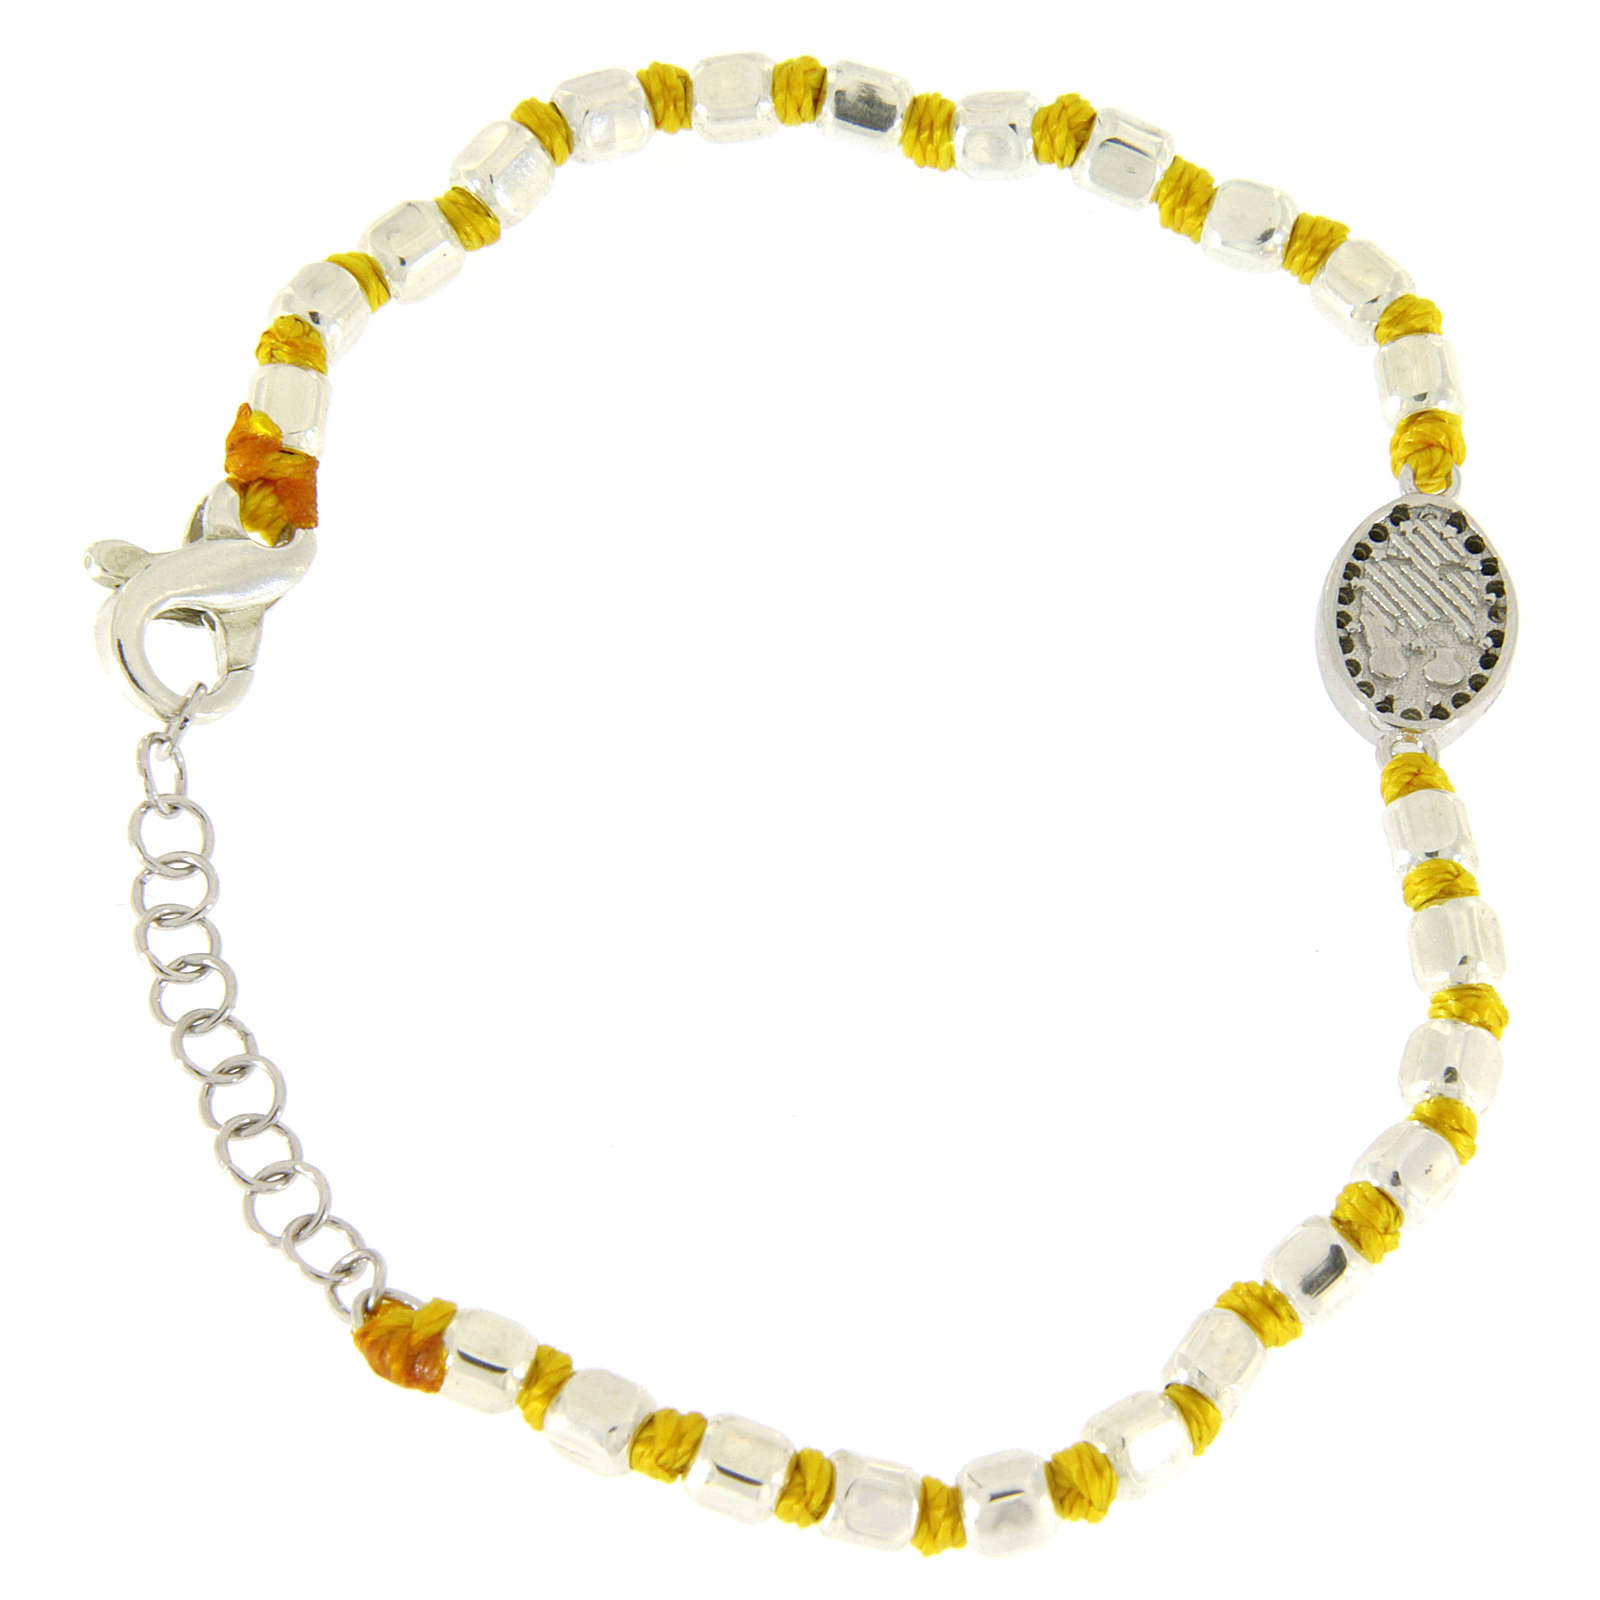 Bracelet with multifaceted spheres sized 2 mm with black zirconate Saint Rita medalet on yellow cotton cord 4